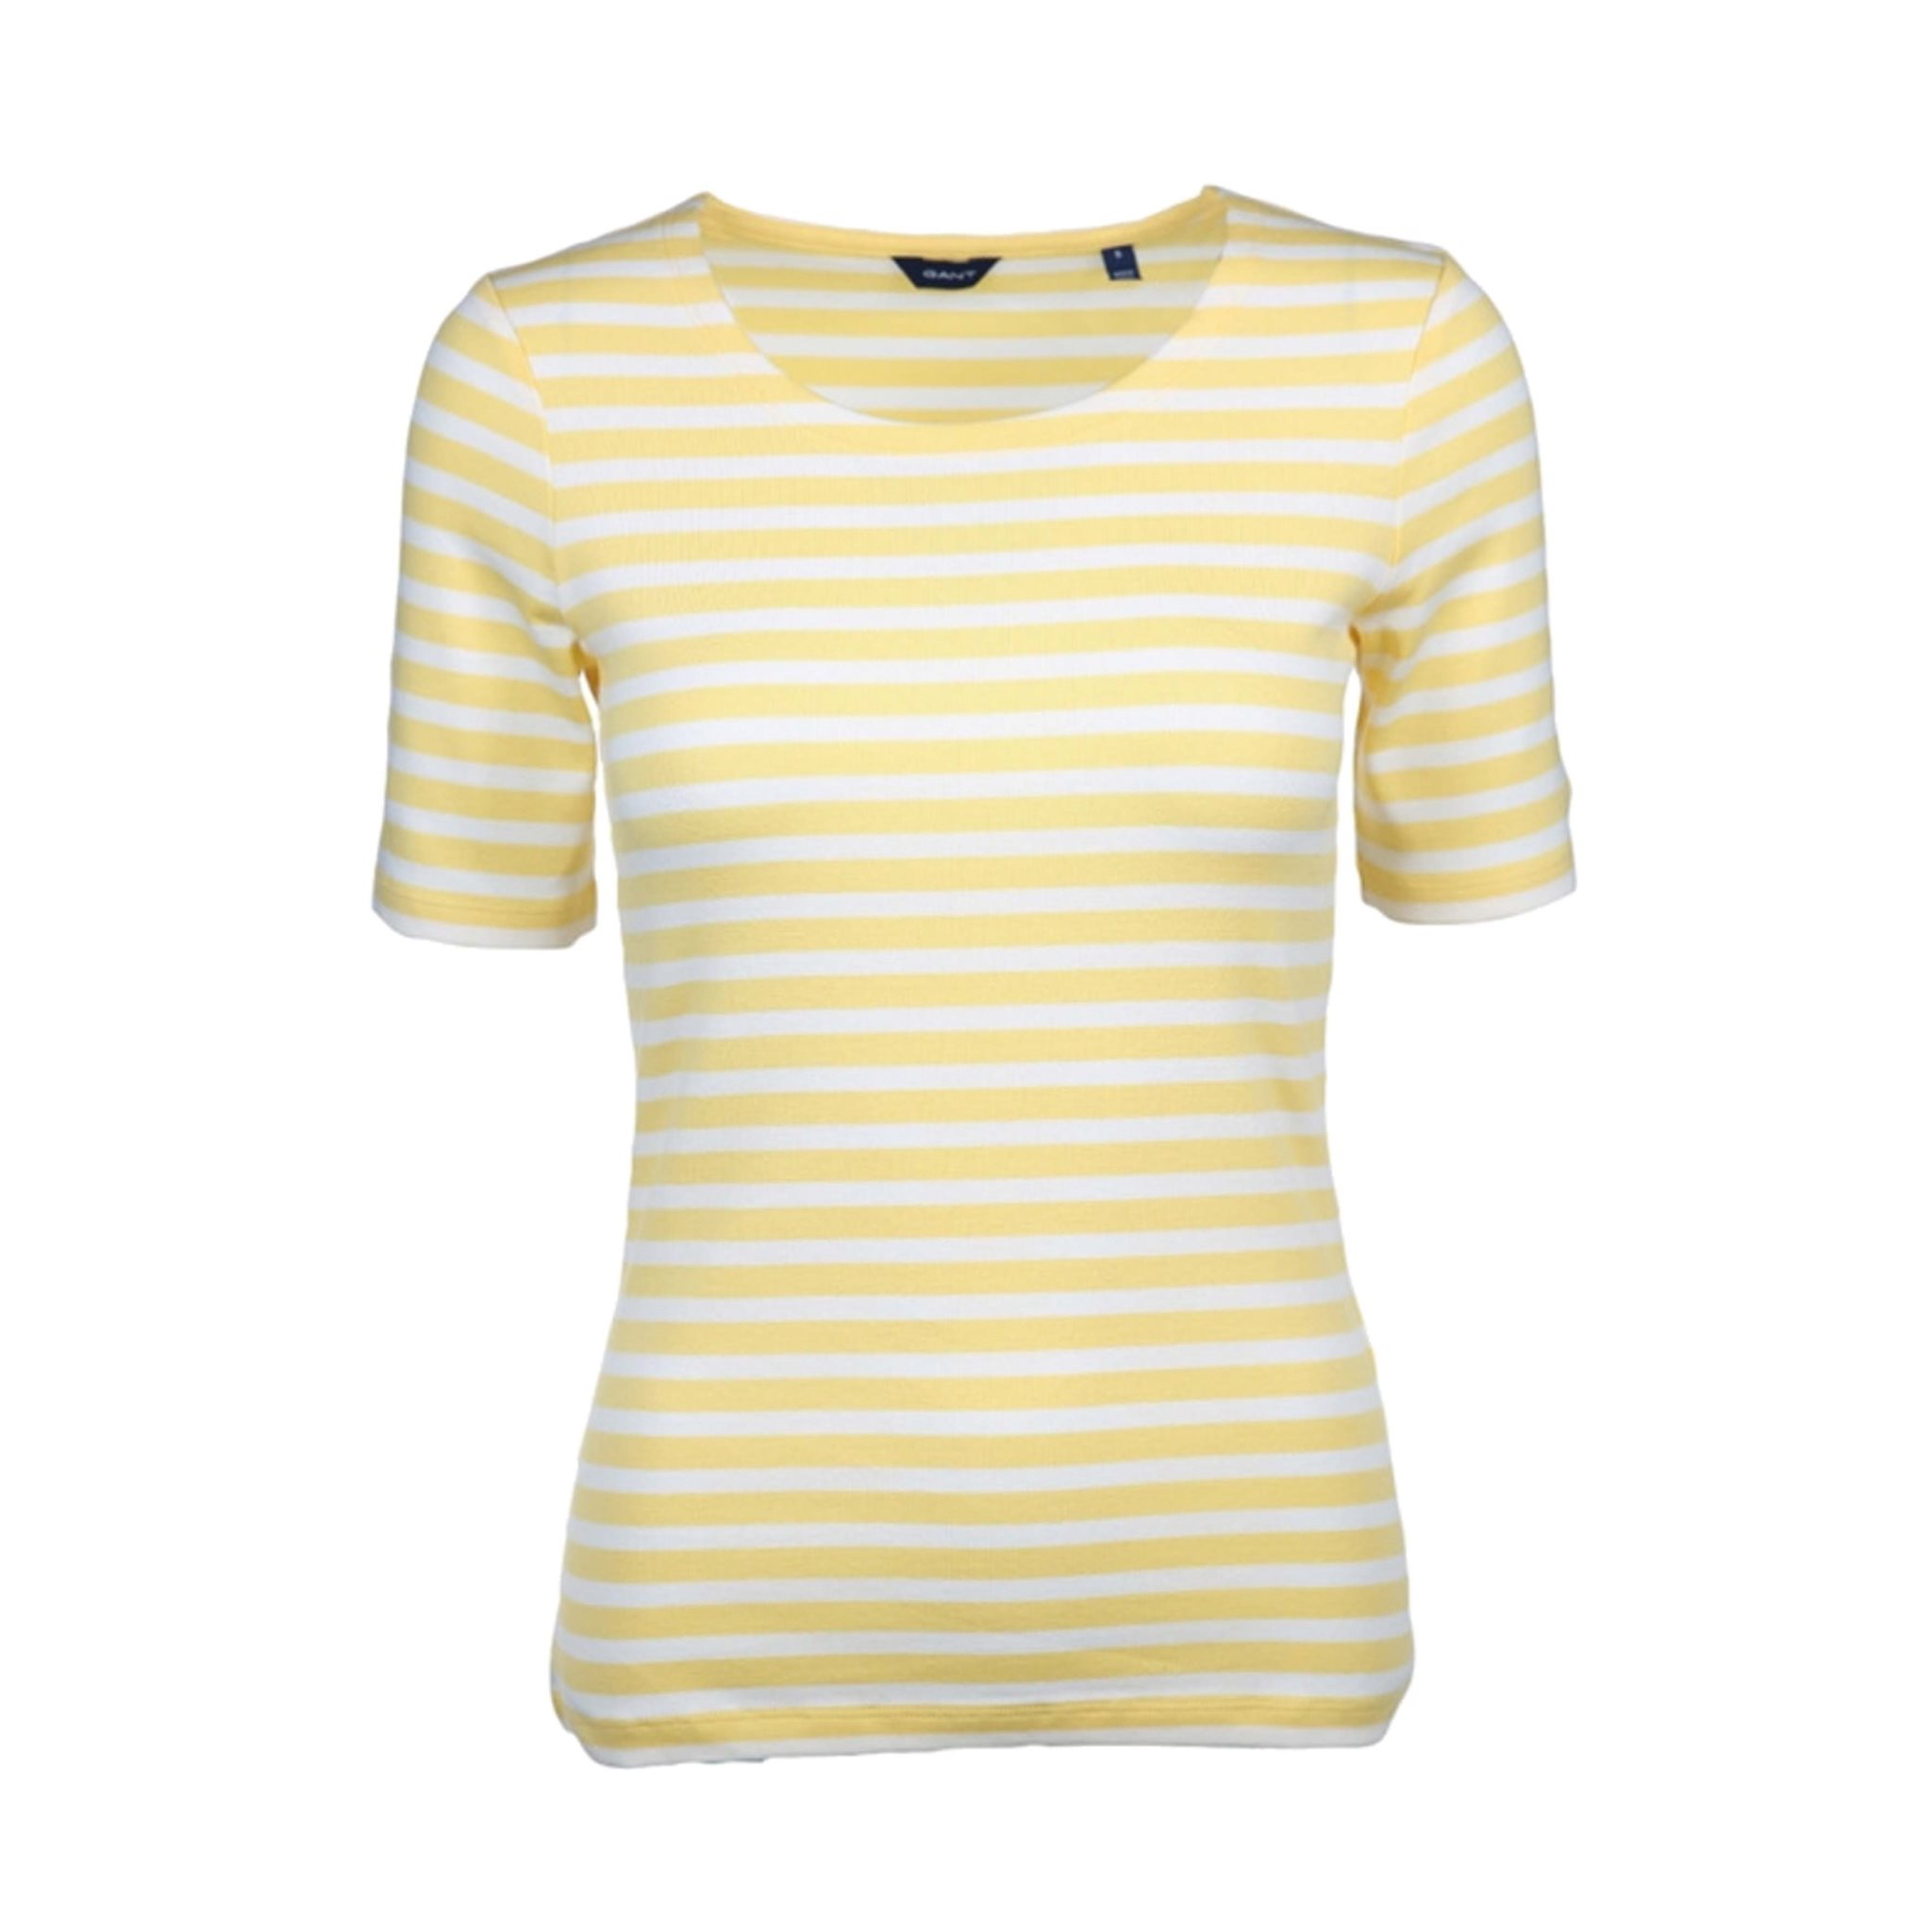 STRIPED 1X1 RIB LSS T-SHIRT GANT WOMAN